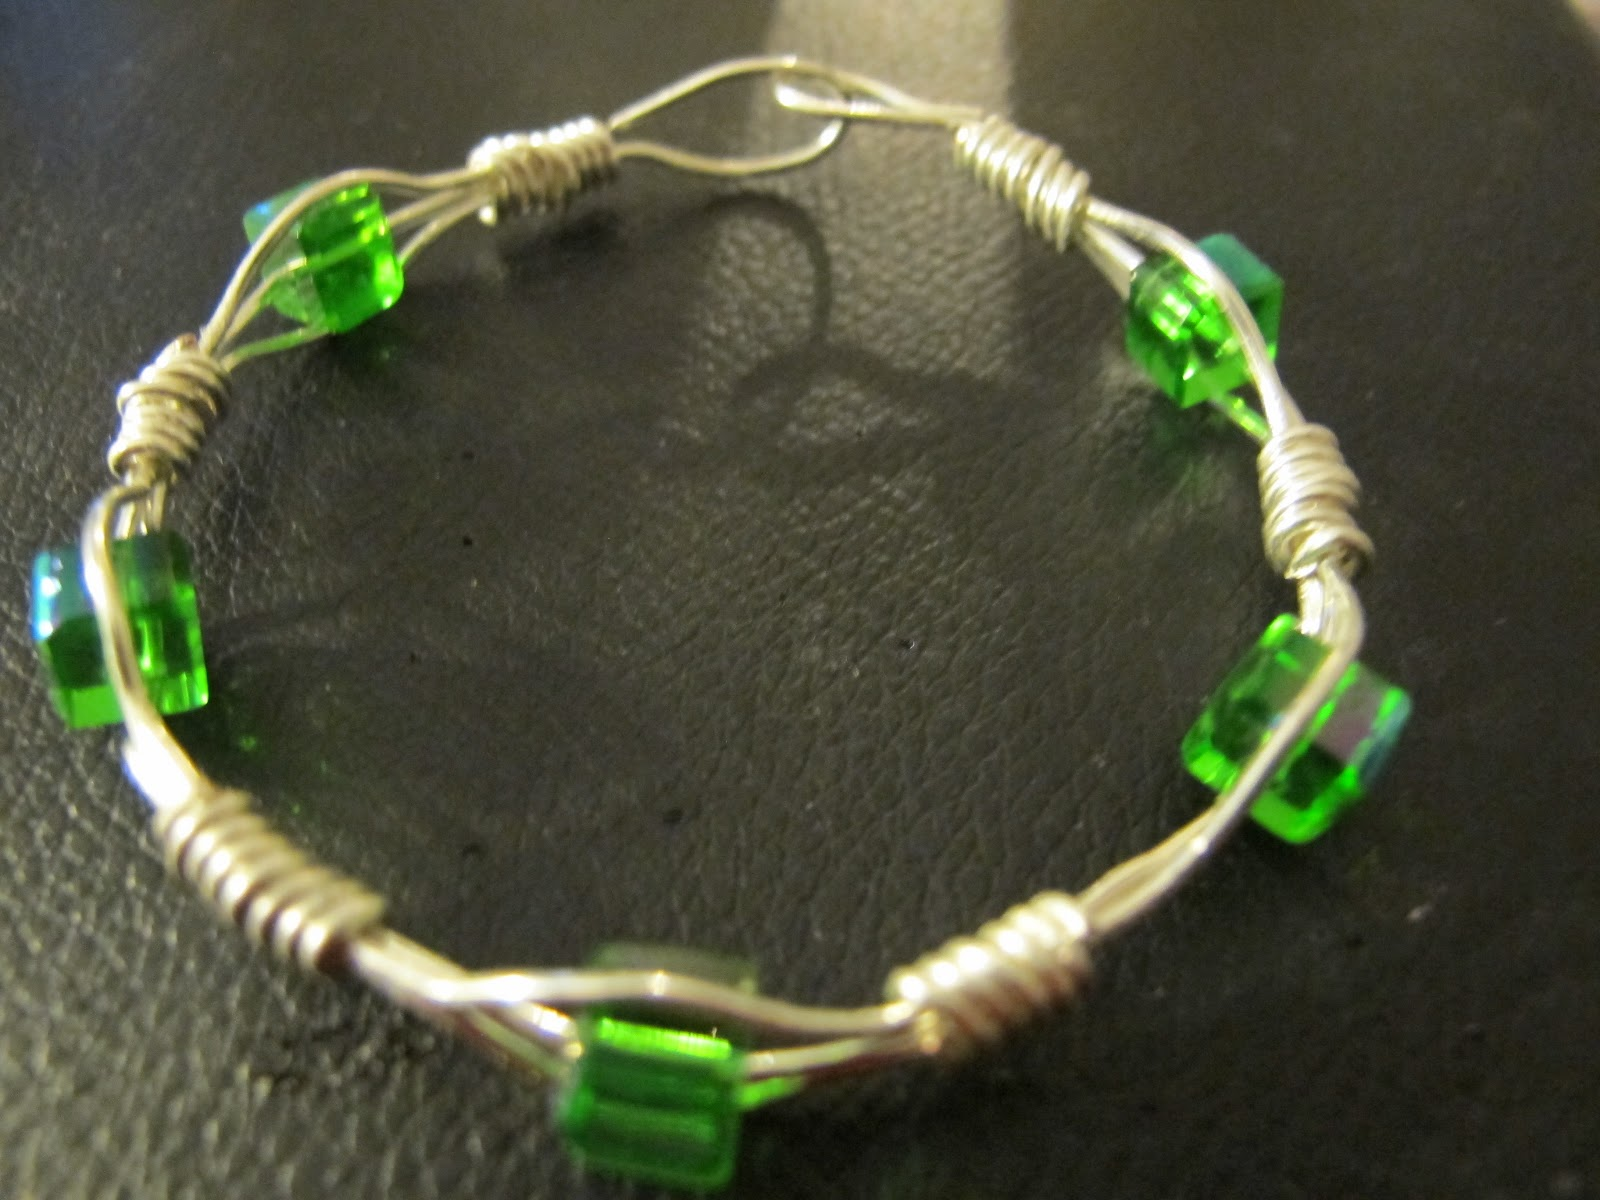 Bangle Stand Designs : Naomi s designs handmade wire jewelry april